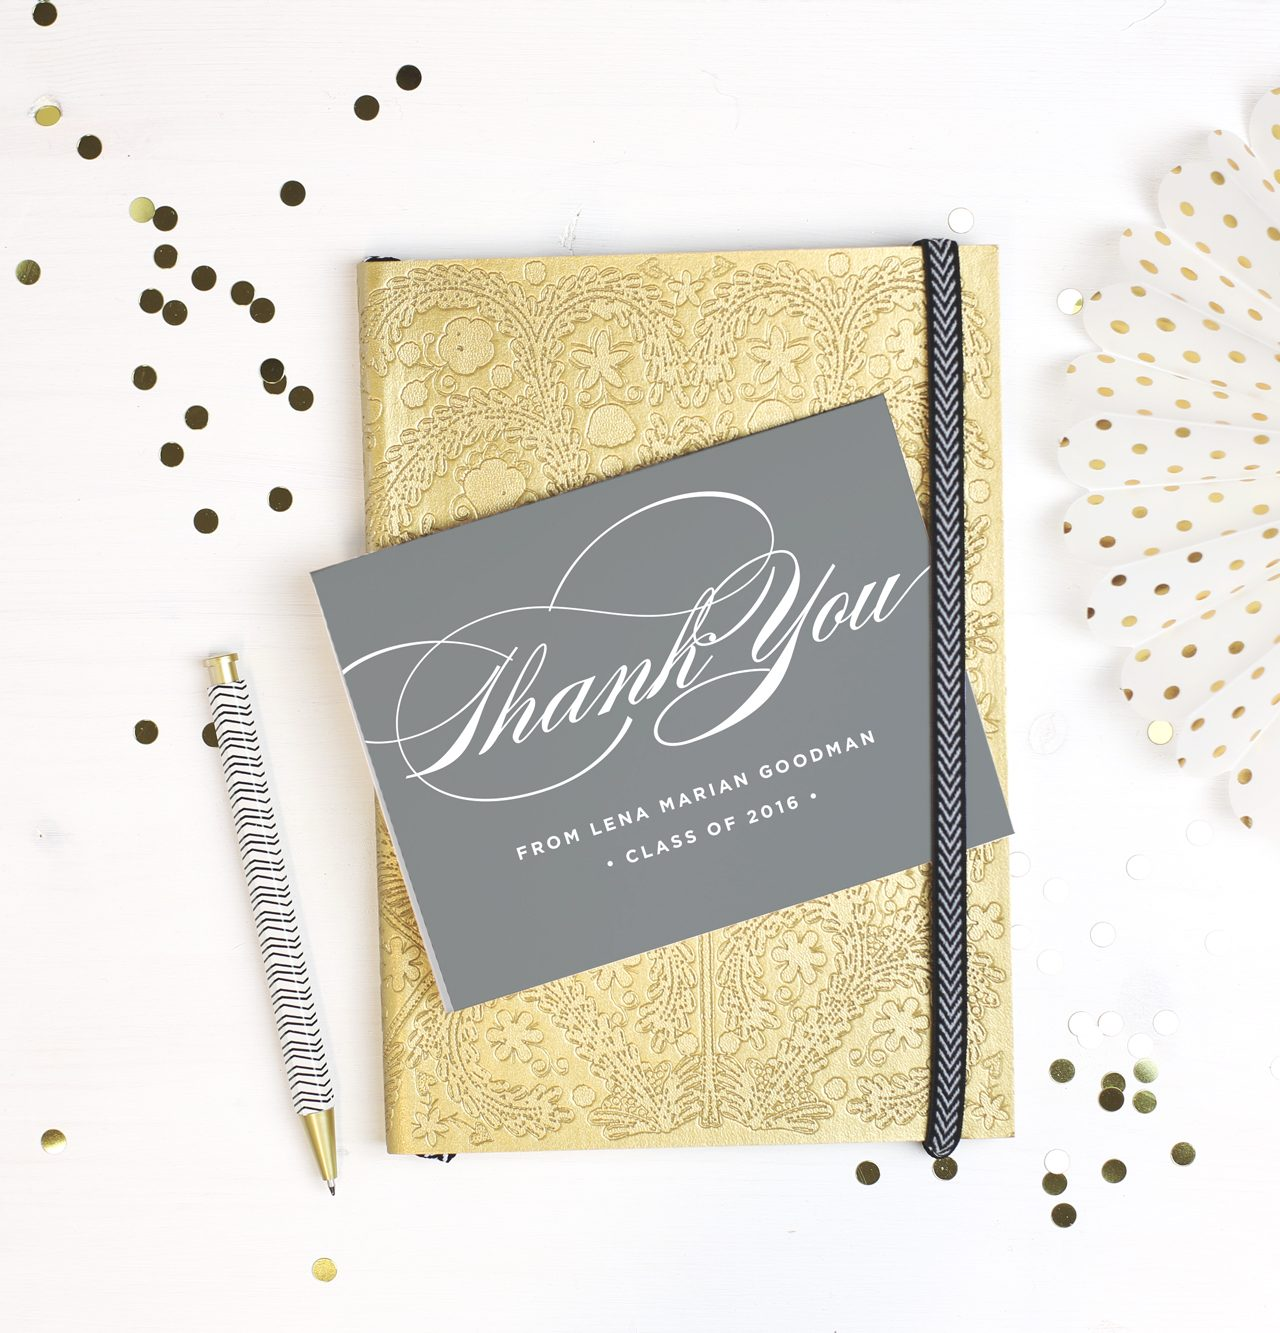 Custom Invitations Made Simple with Basic Invite